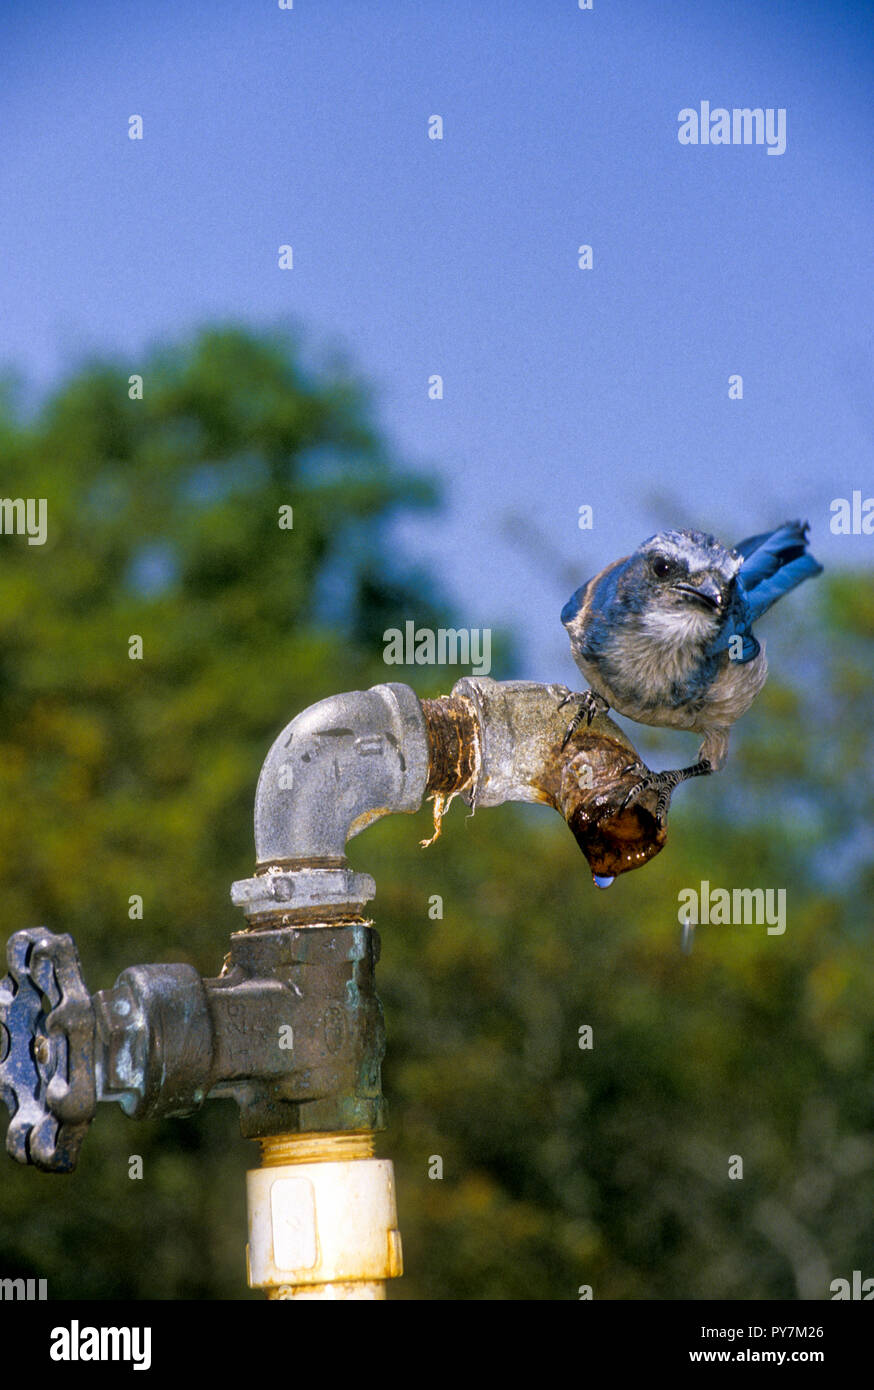 Florida Scrub Jay, Aphelocoma coerulescens, drinking from dripping water faucet - Stock Image